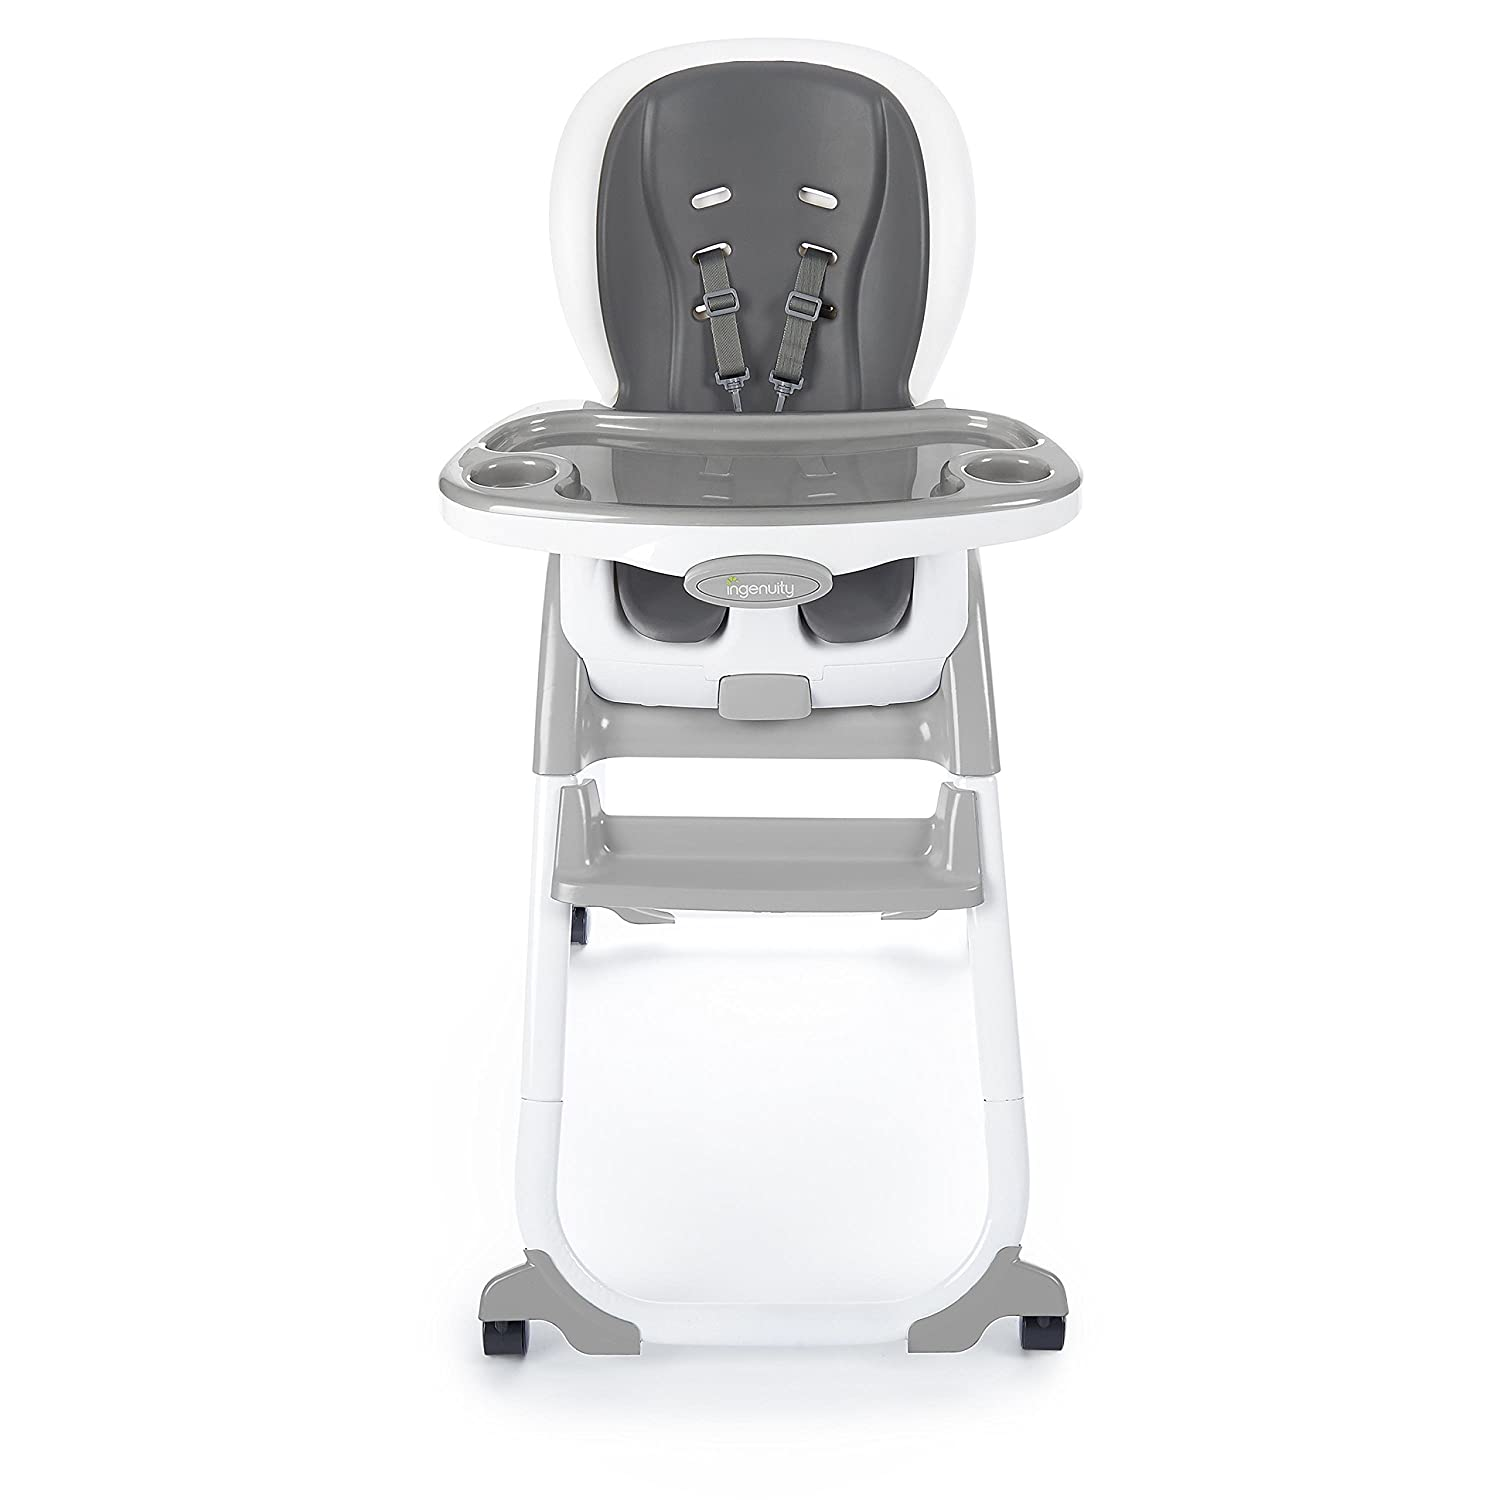 2e104b6c00b1 Ingenuity Trio Elite 3-in-1 High Chair – Vesper - High Chair ...